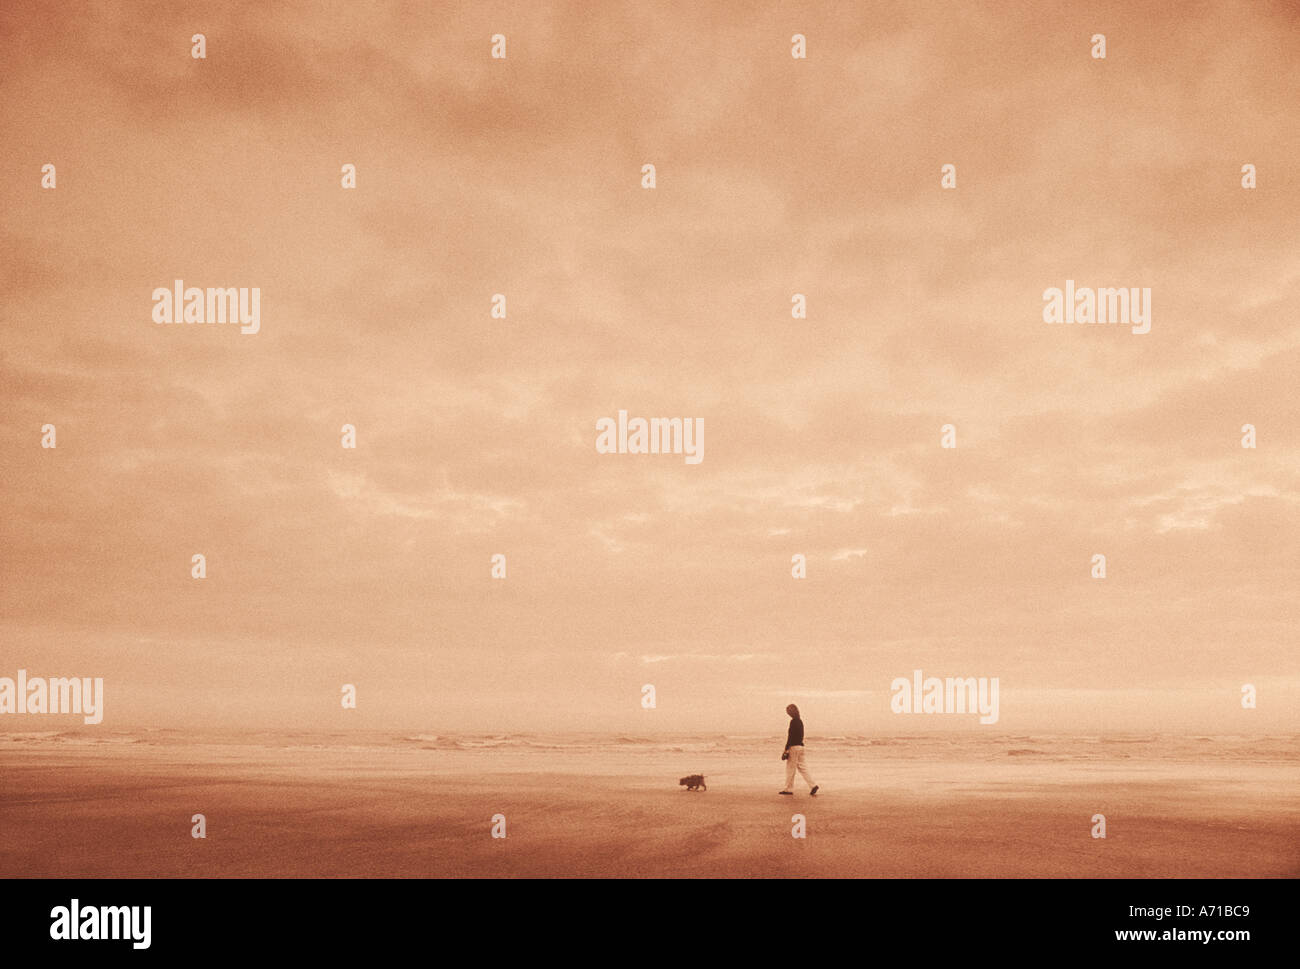 Woman walking along beach with pet dog on leash model released image - Stock Image